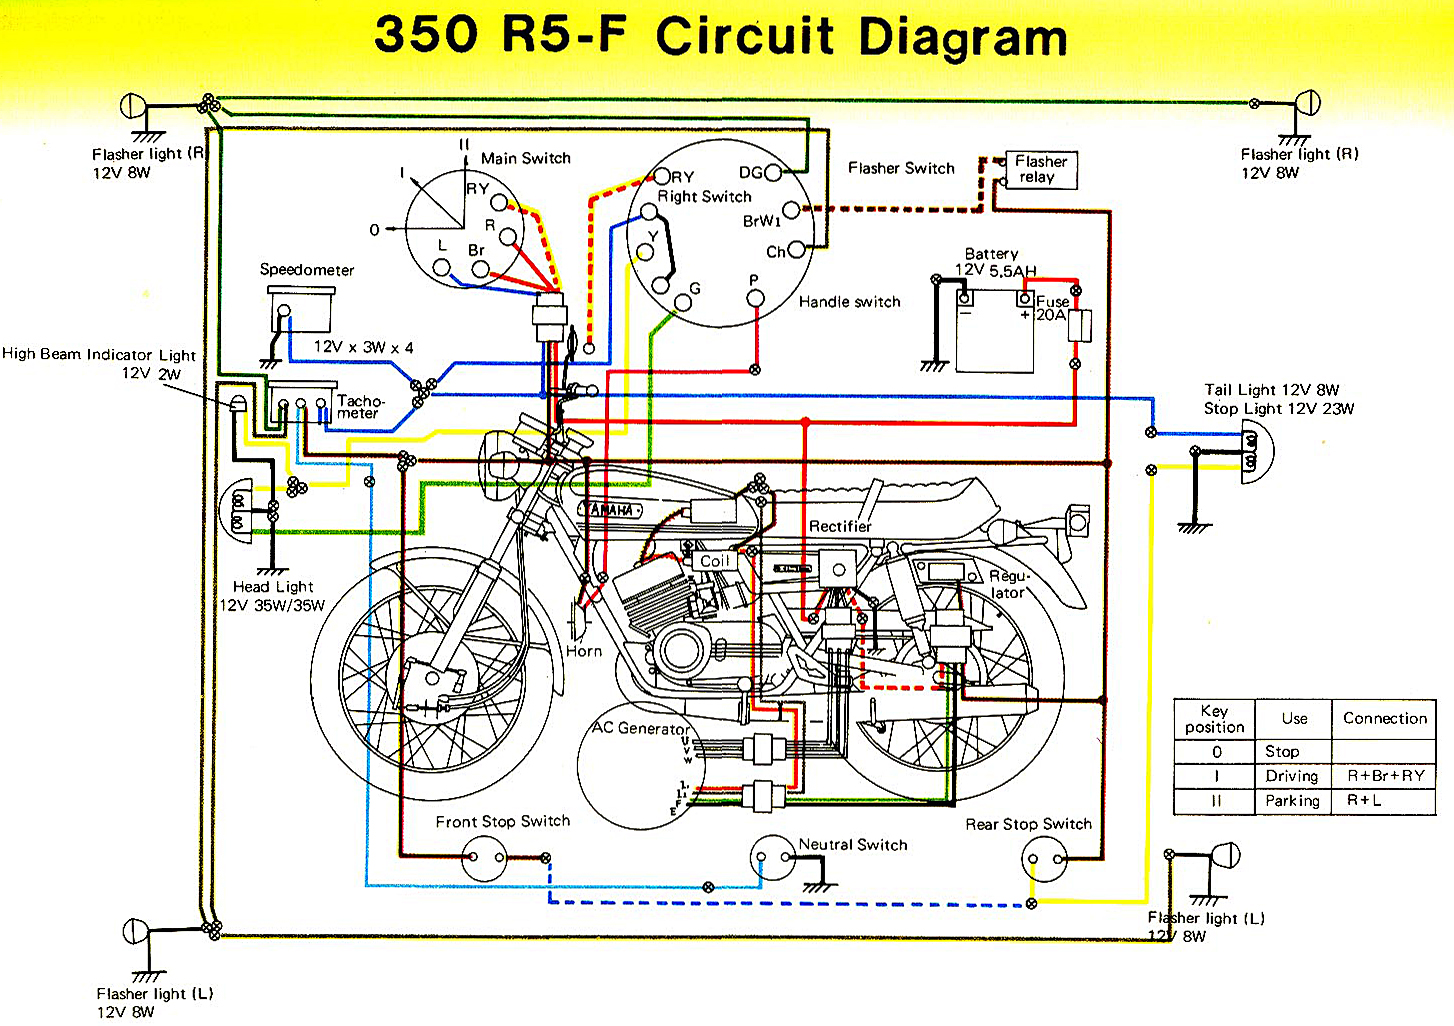 hight resolution of rd 350 wiring diagram wiring diagram schematics 1973 yamaha rd 350 wiring diagram rd 350 wiring